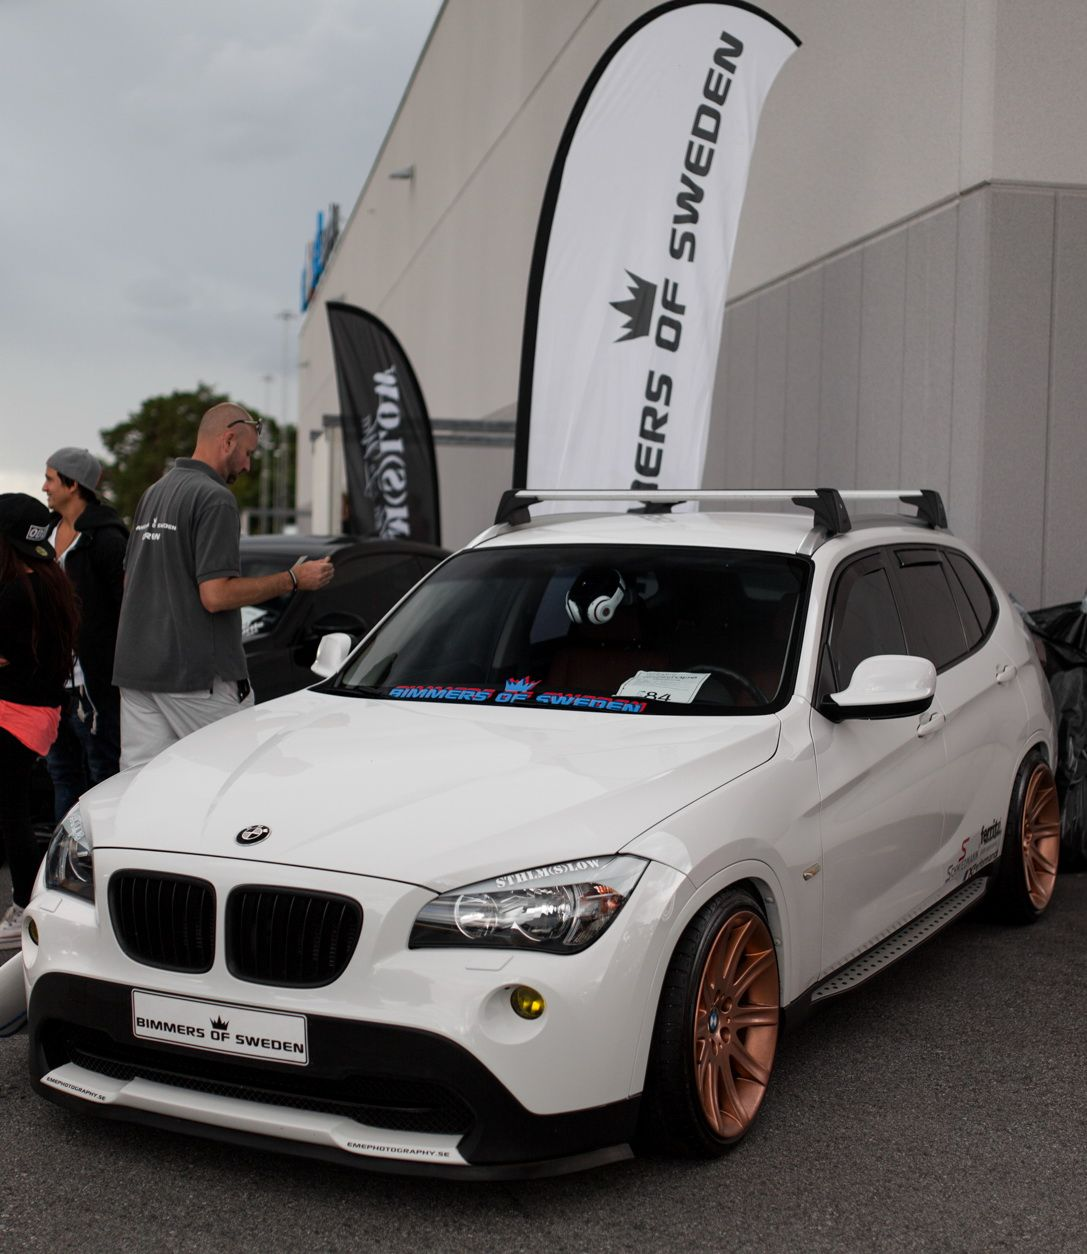 Bmw X1 E84 Car Photo From - small